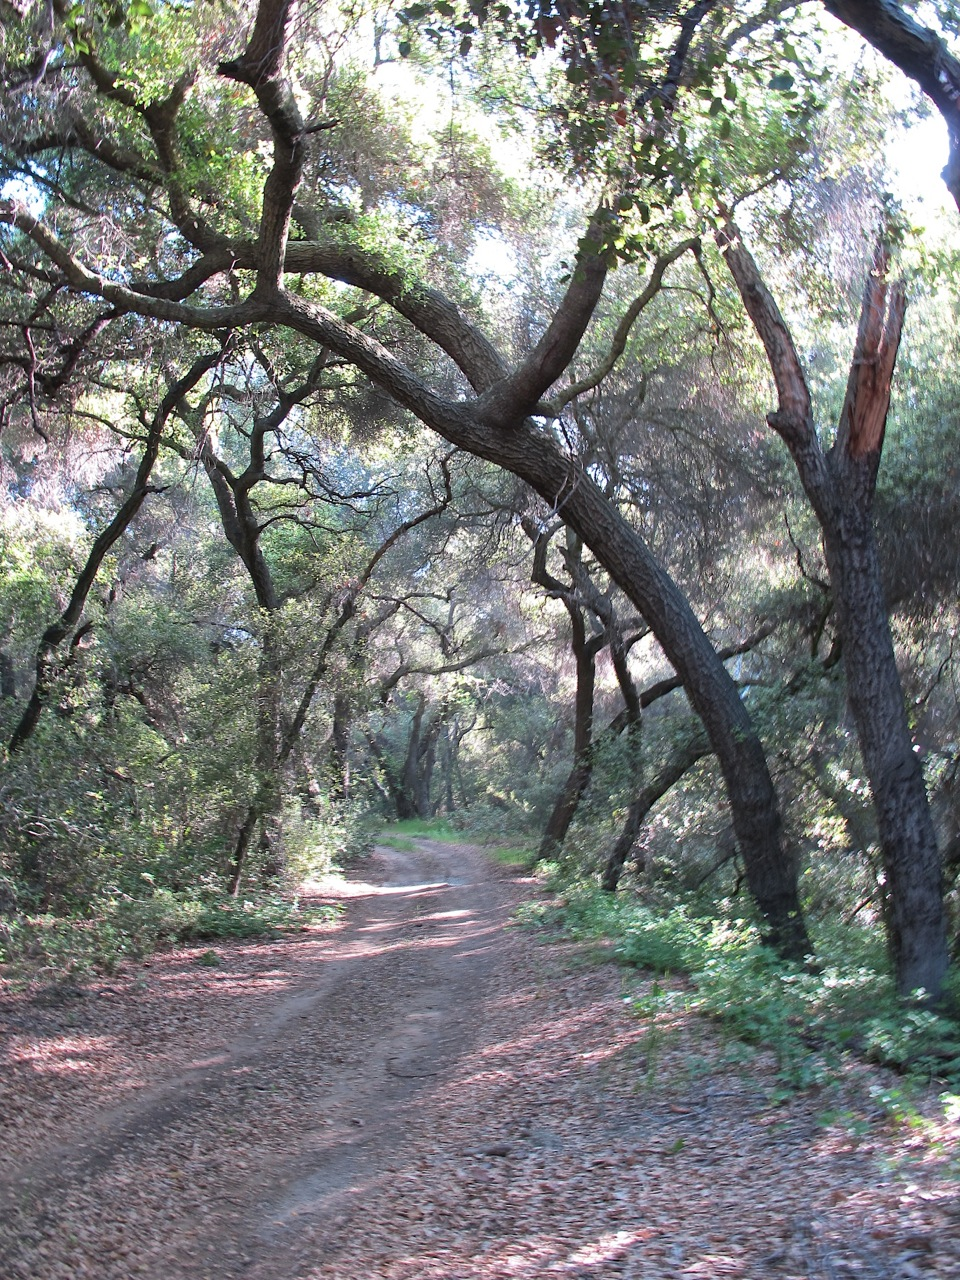 unpaved road with corridor of trees arching over